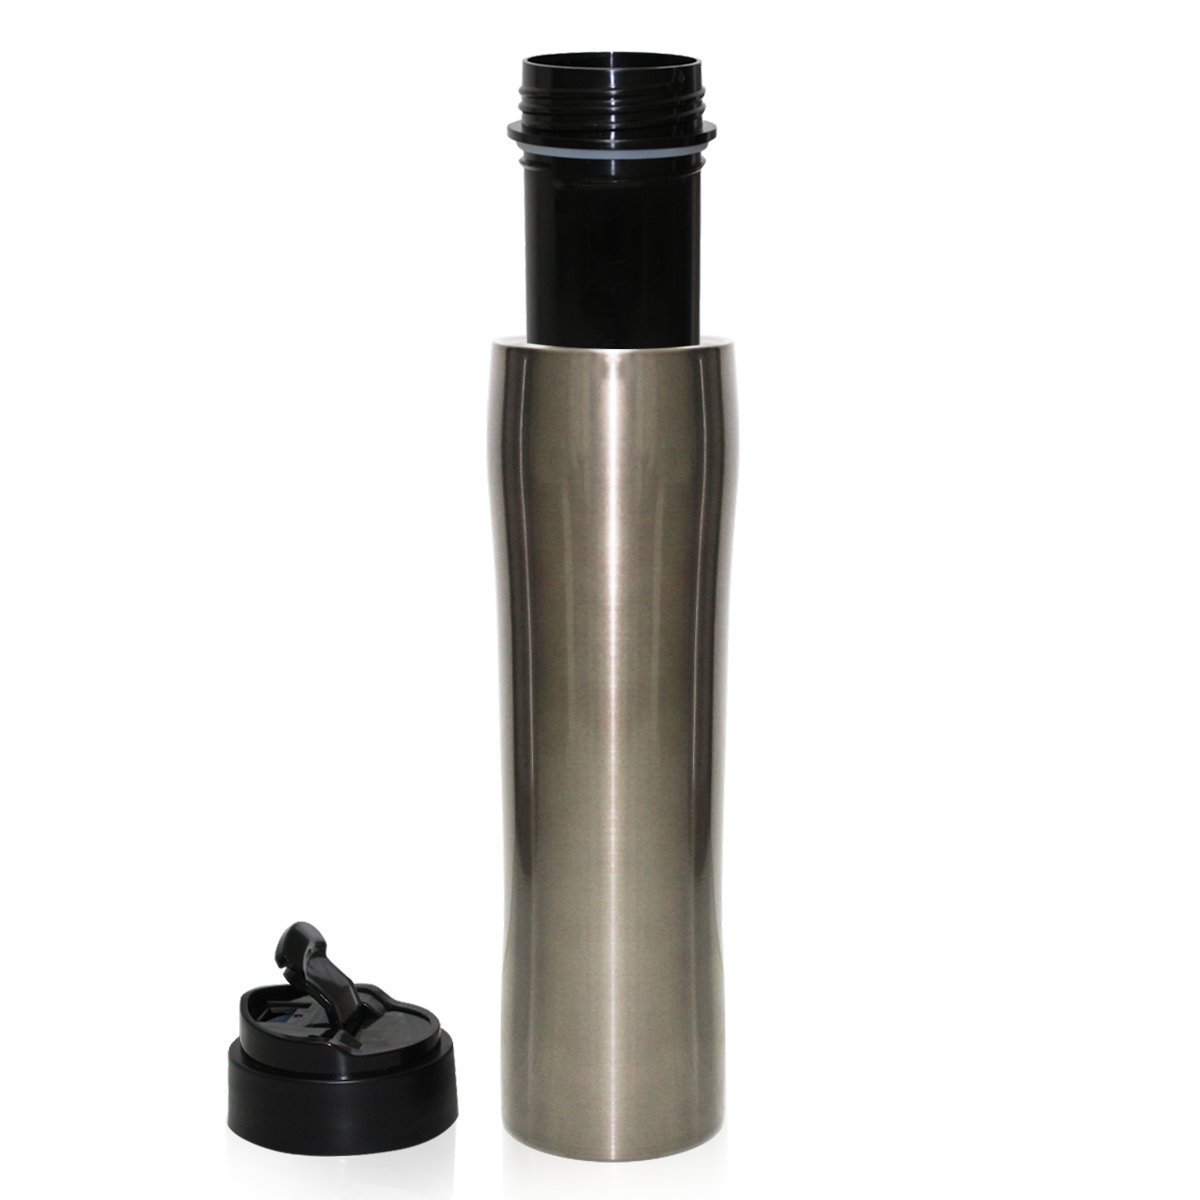 i Cafilas The Original Portable French Press Coffee Maker | Premium Stainless Steel | Vacuum Insulated Travel Mug | Hot & Cold Brew (12 oz) Durability Easy Use& Clean French Presses (Silver)